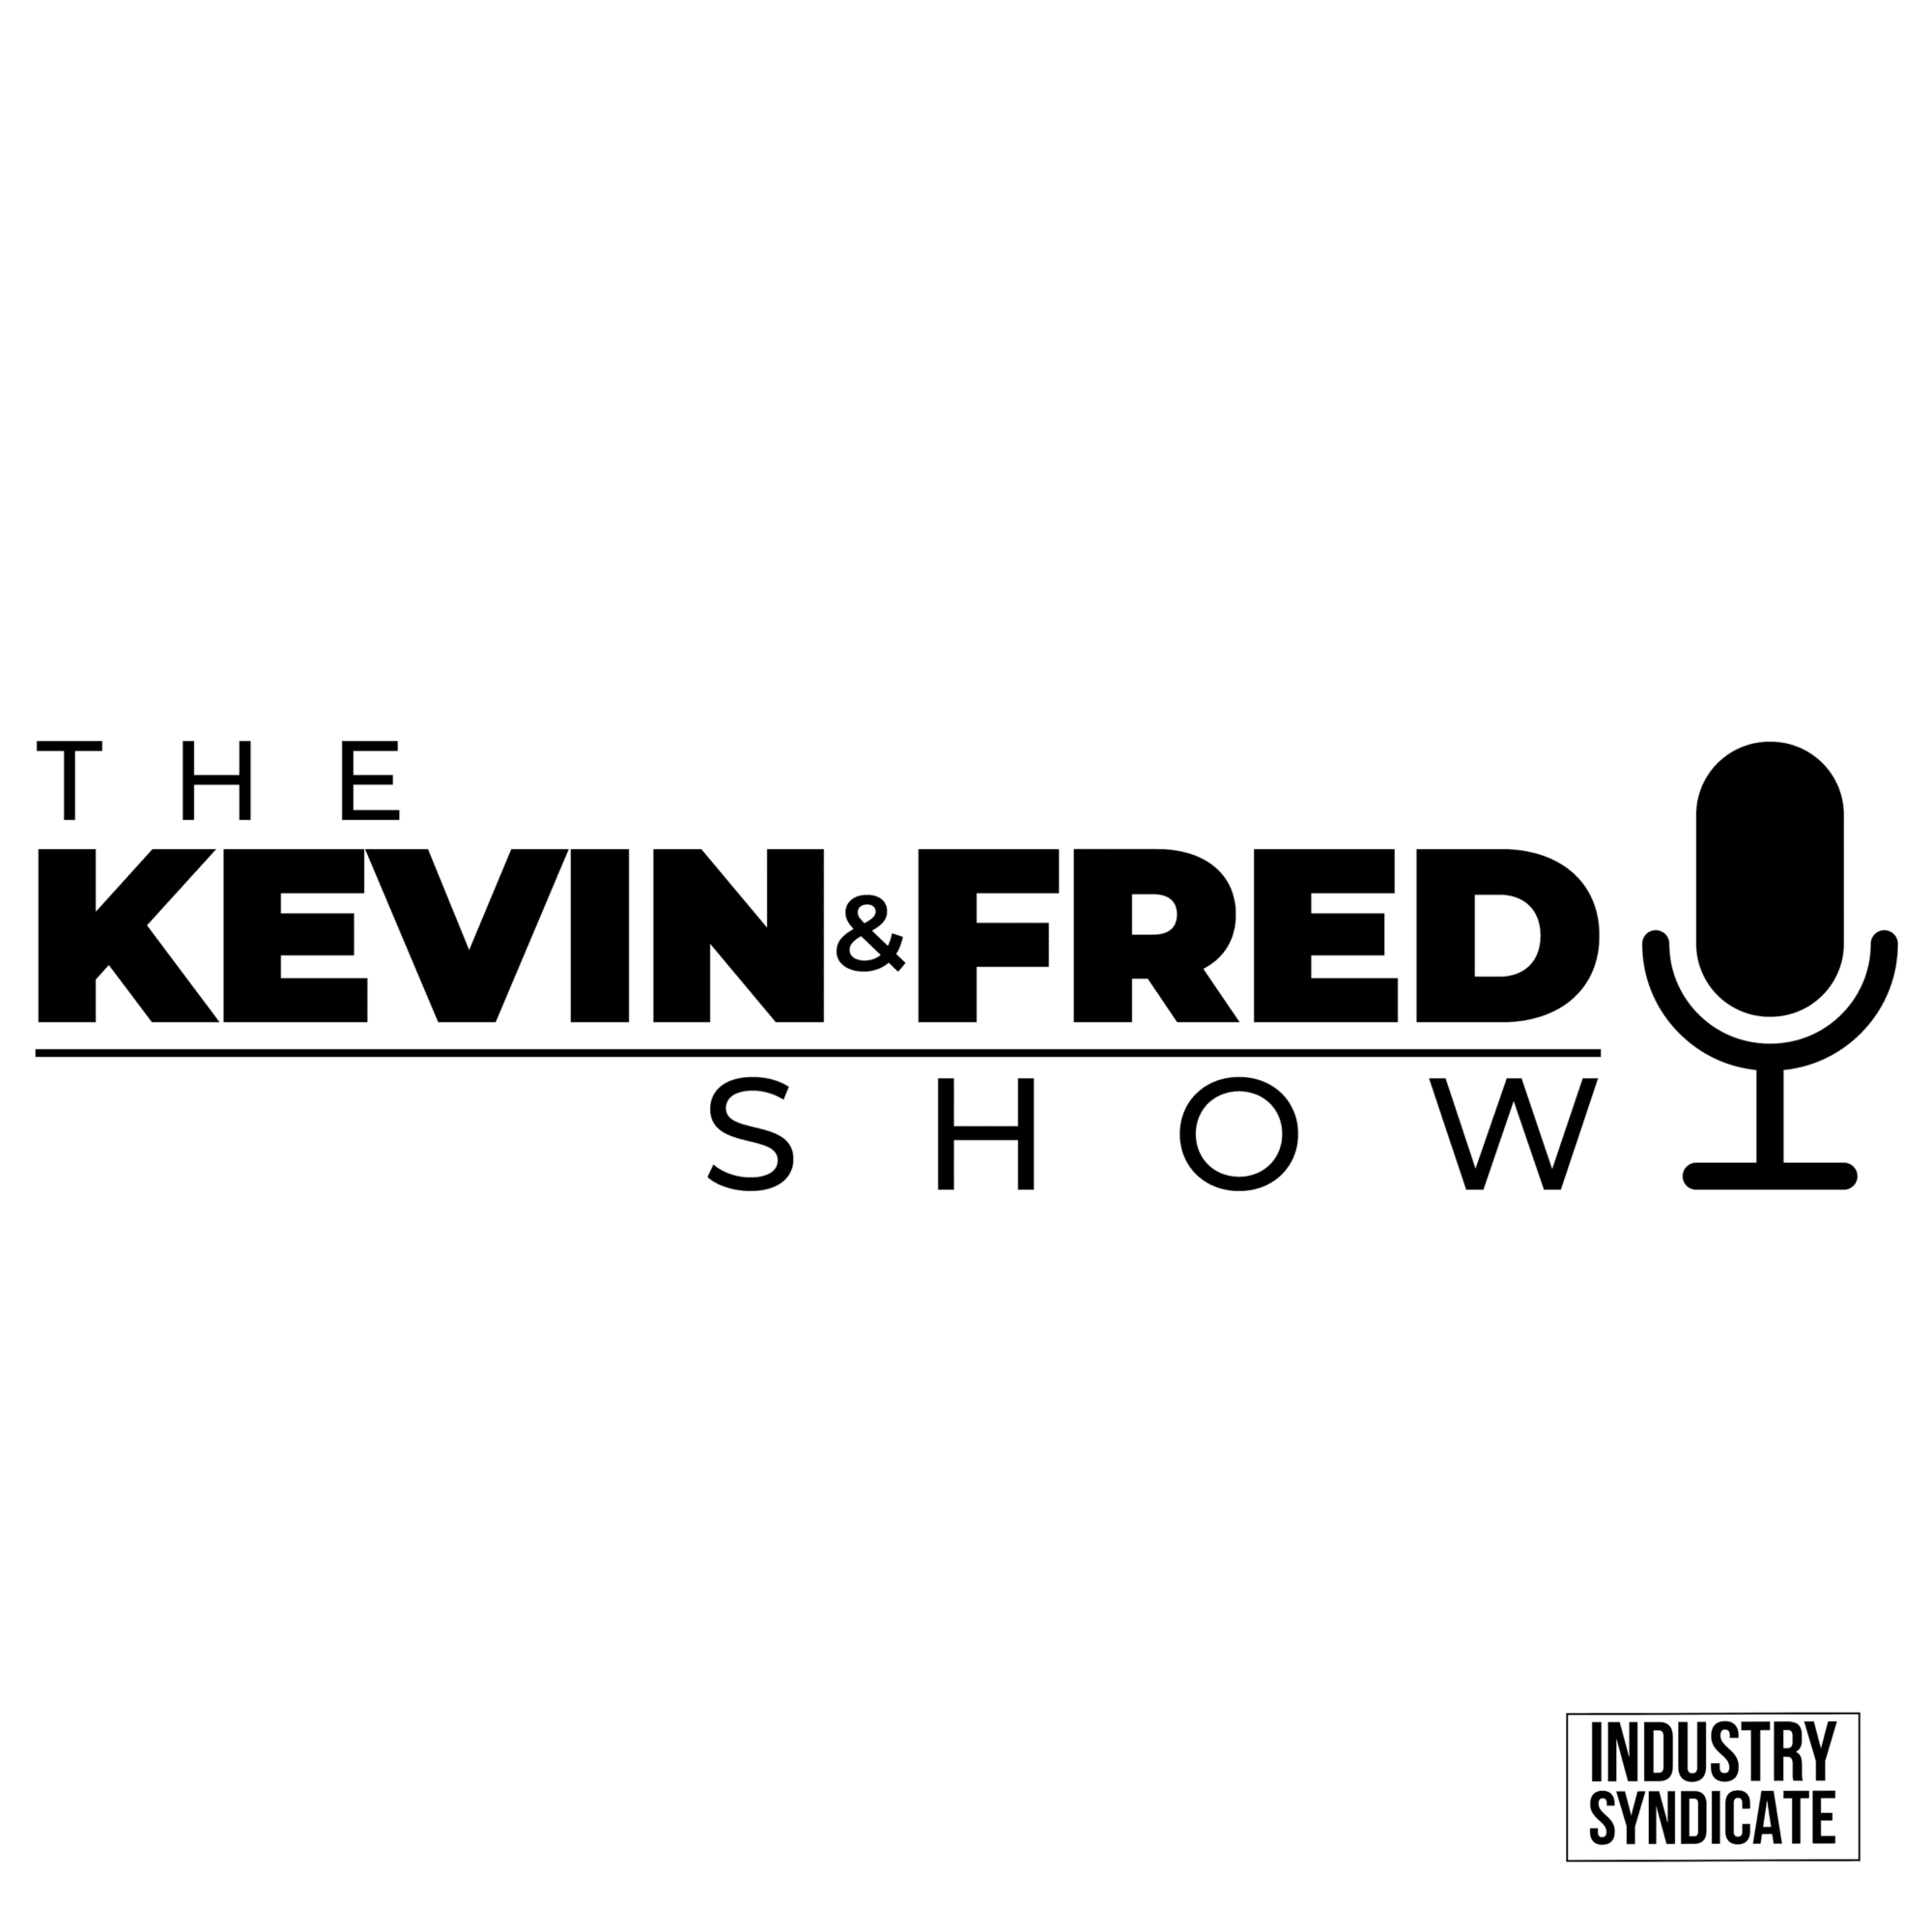 The Kevin & Fred Show